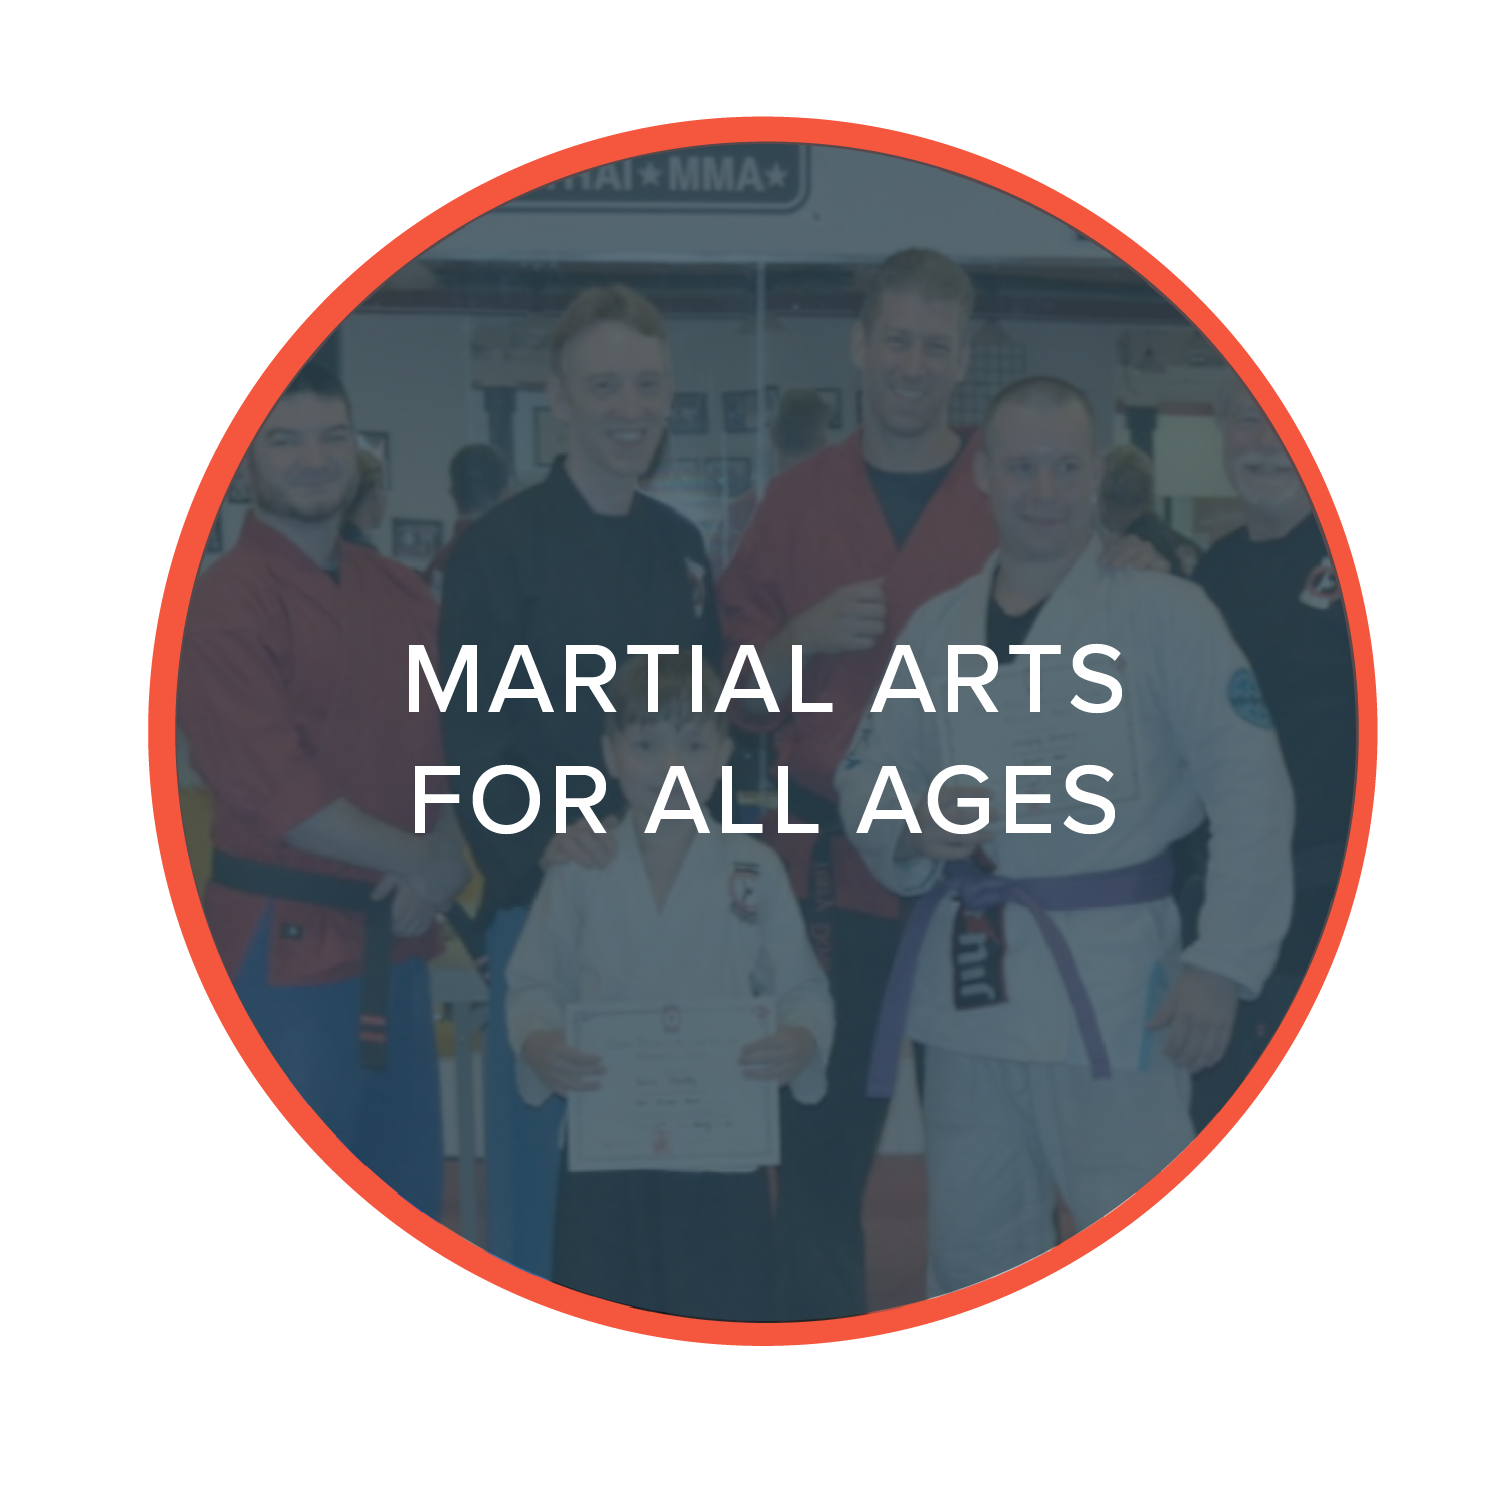 Learn self defense, discipline and sculpt lean muscle in one of our ten unique Martial Arts classes. From introductory Kickboxing to Jiu Jitsu & kung fu, we provide instructional training for all age groups and experience levels.  Develop greater flexibility, discipline and strength in a fun and uplifting atmosphere. Learn more about our individual  Martial Arts programs here!